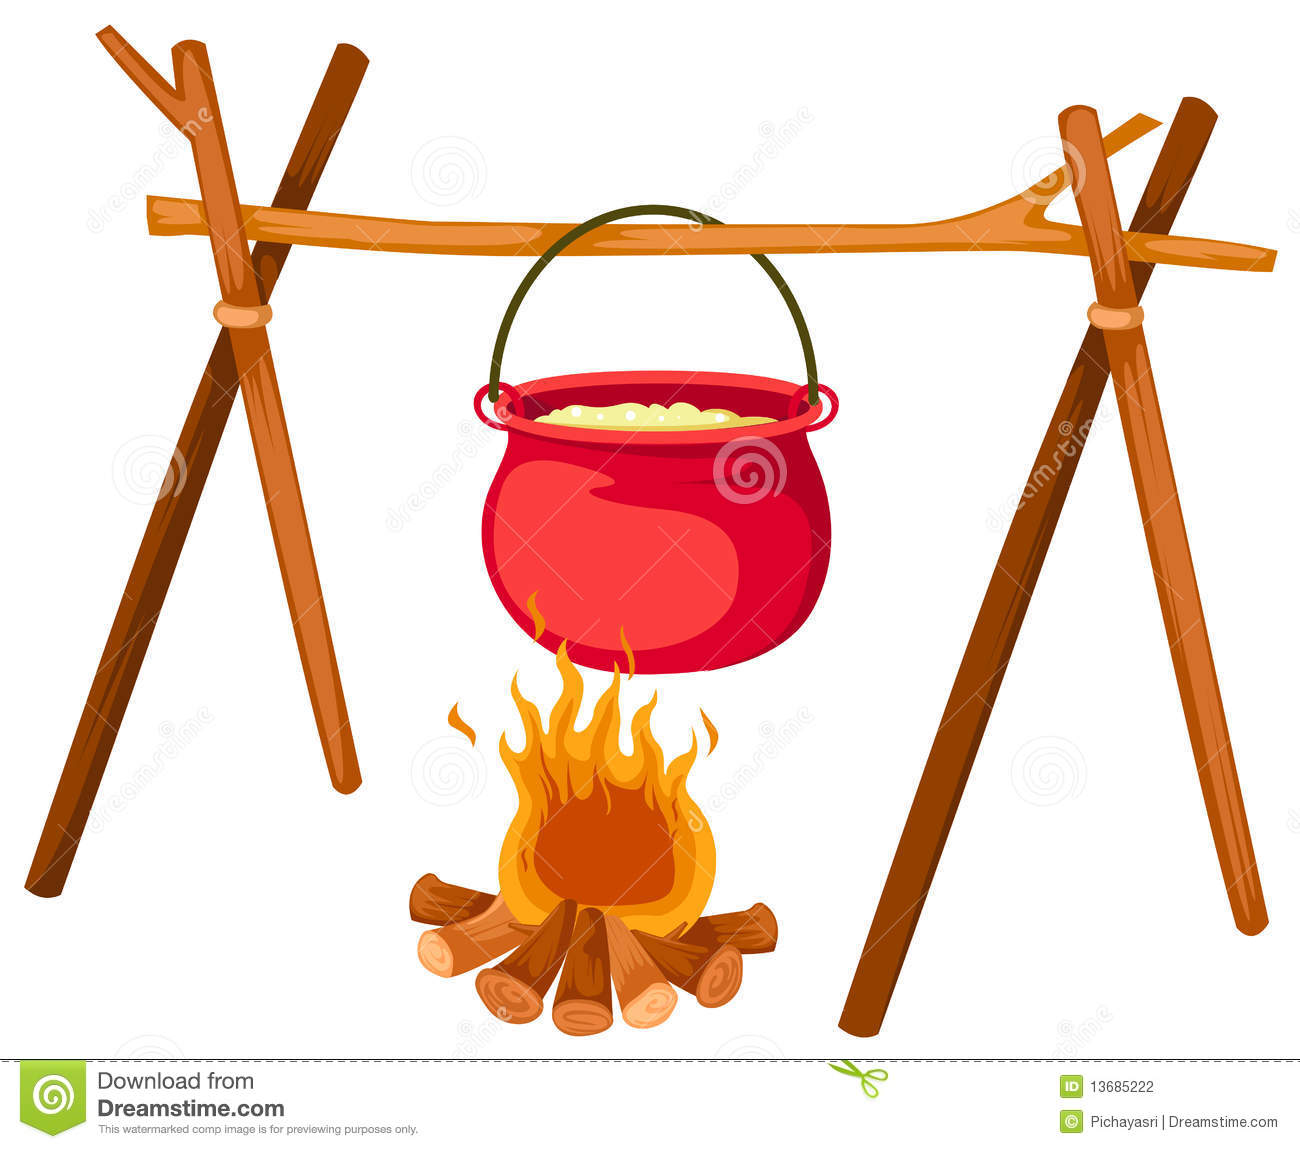 Cooking pot on fire clipart 8 » Clipart Station.